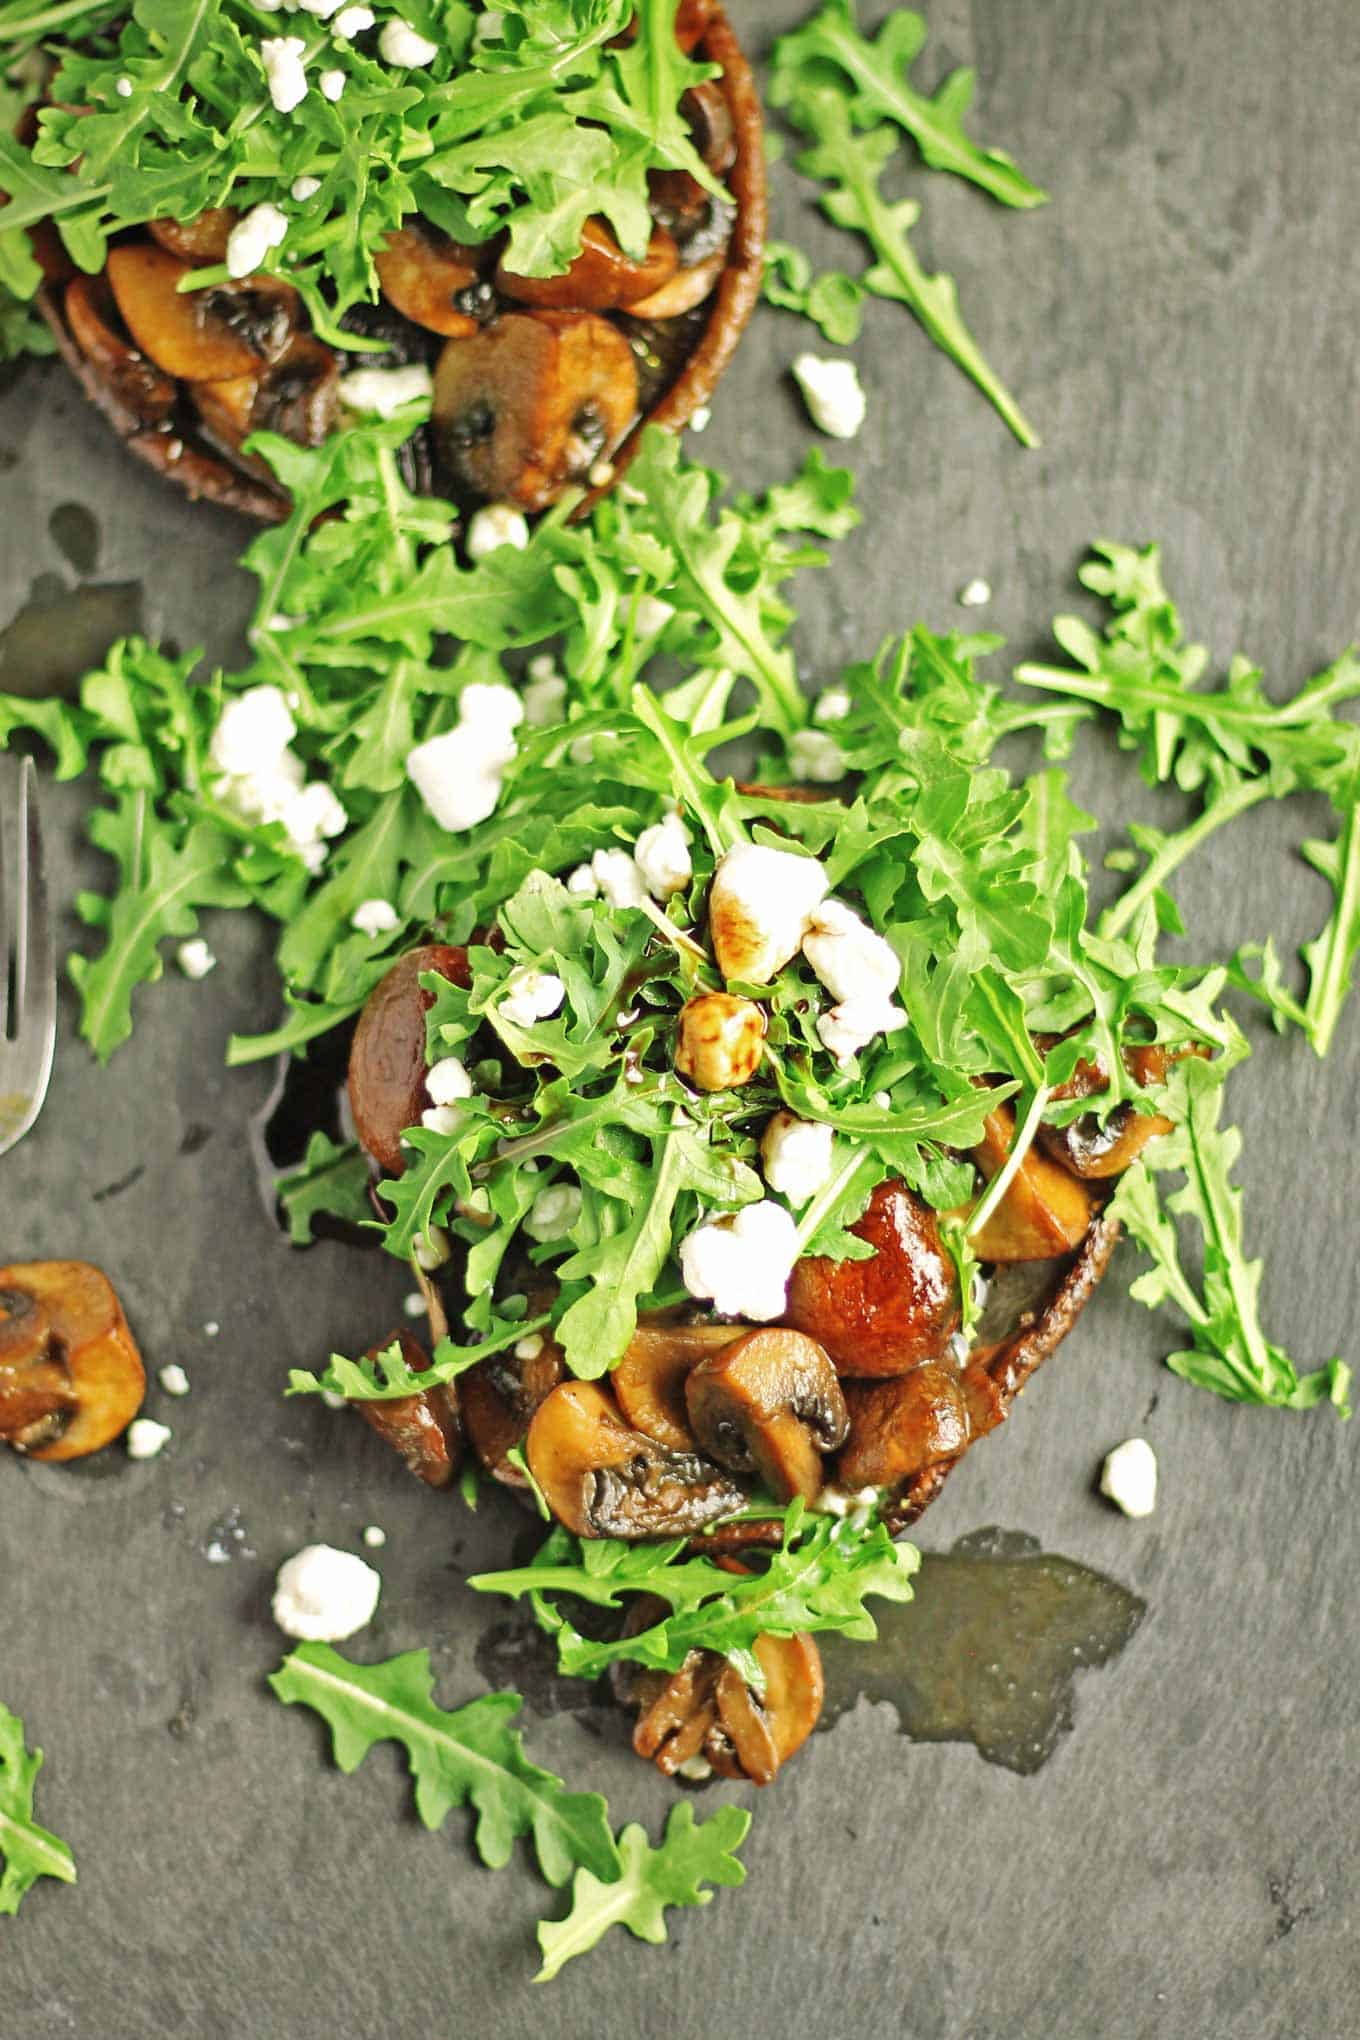 Stacked ale mushrooms with arugula and goat cheese recipe! This 2-mushroom vegetarian dish is sure to please that beer lover in your life. SO GOOD! // Rhubarbarians